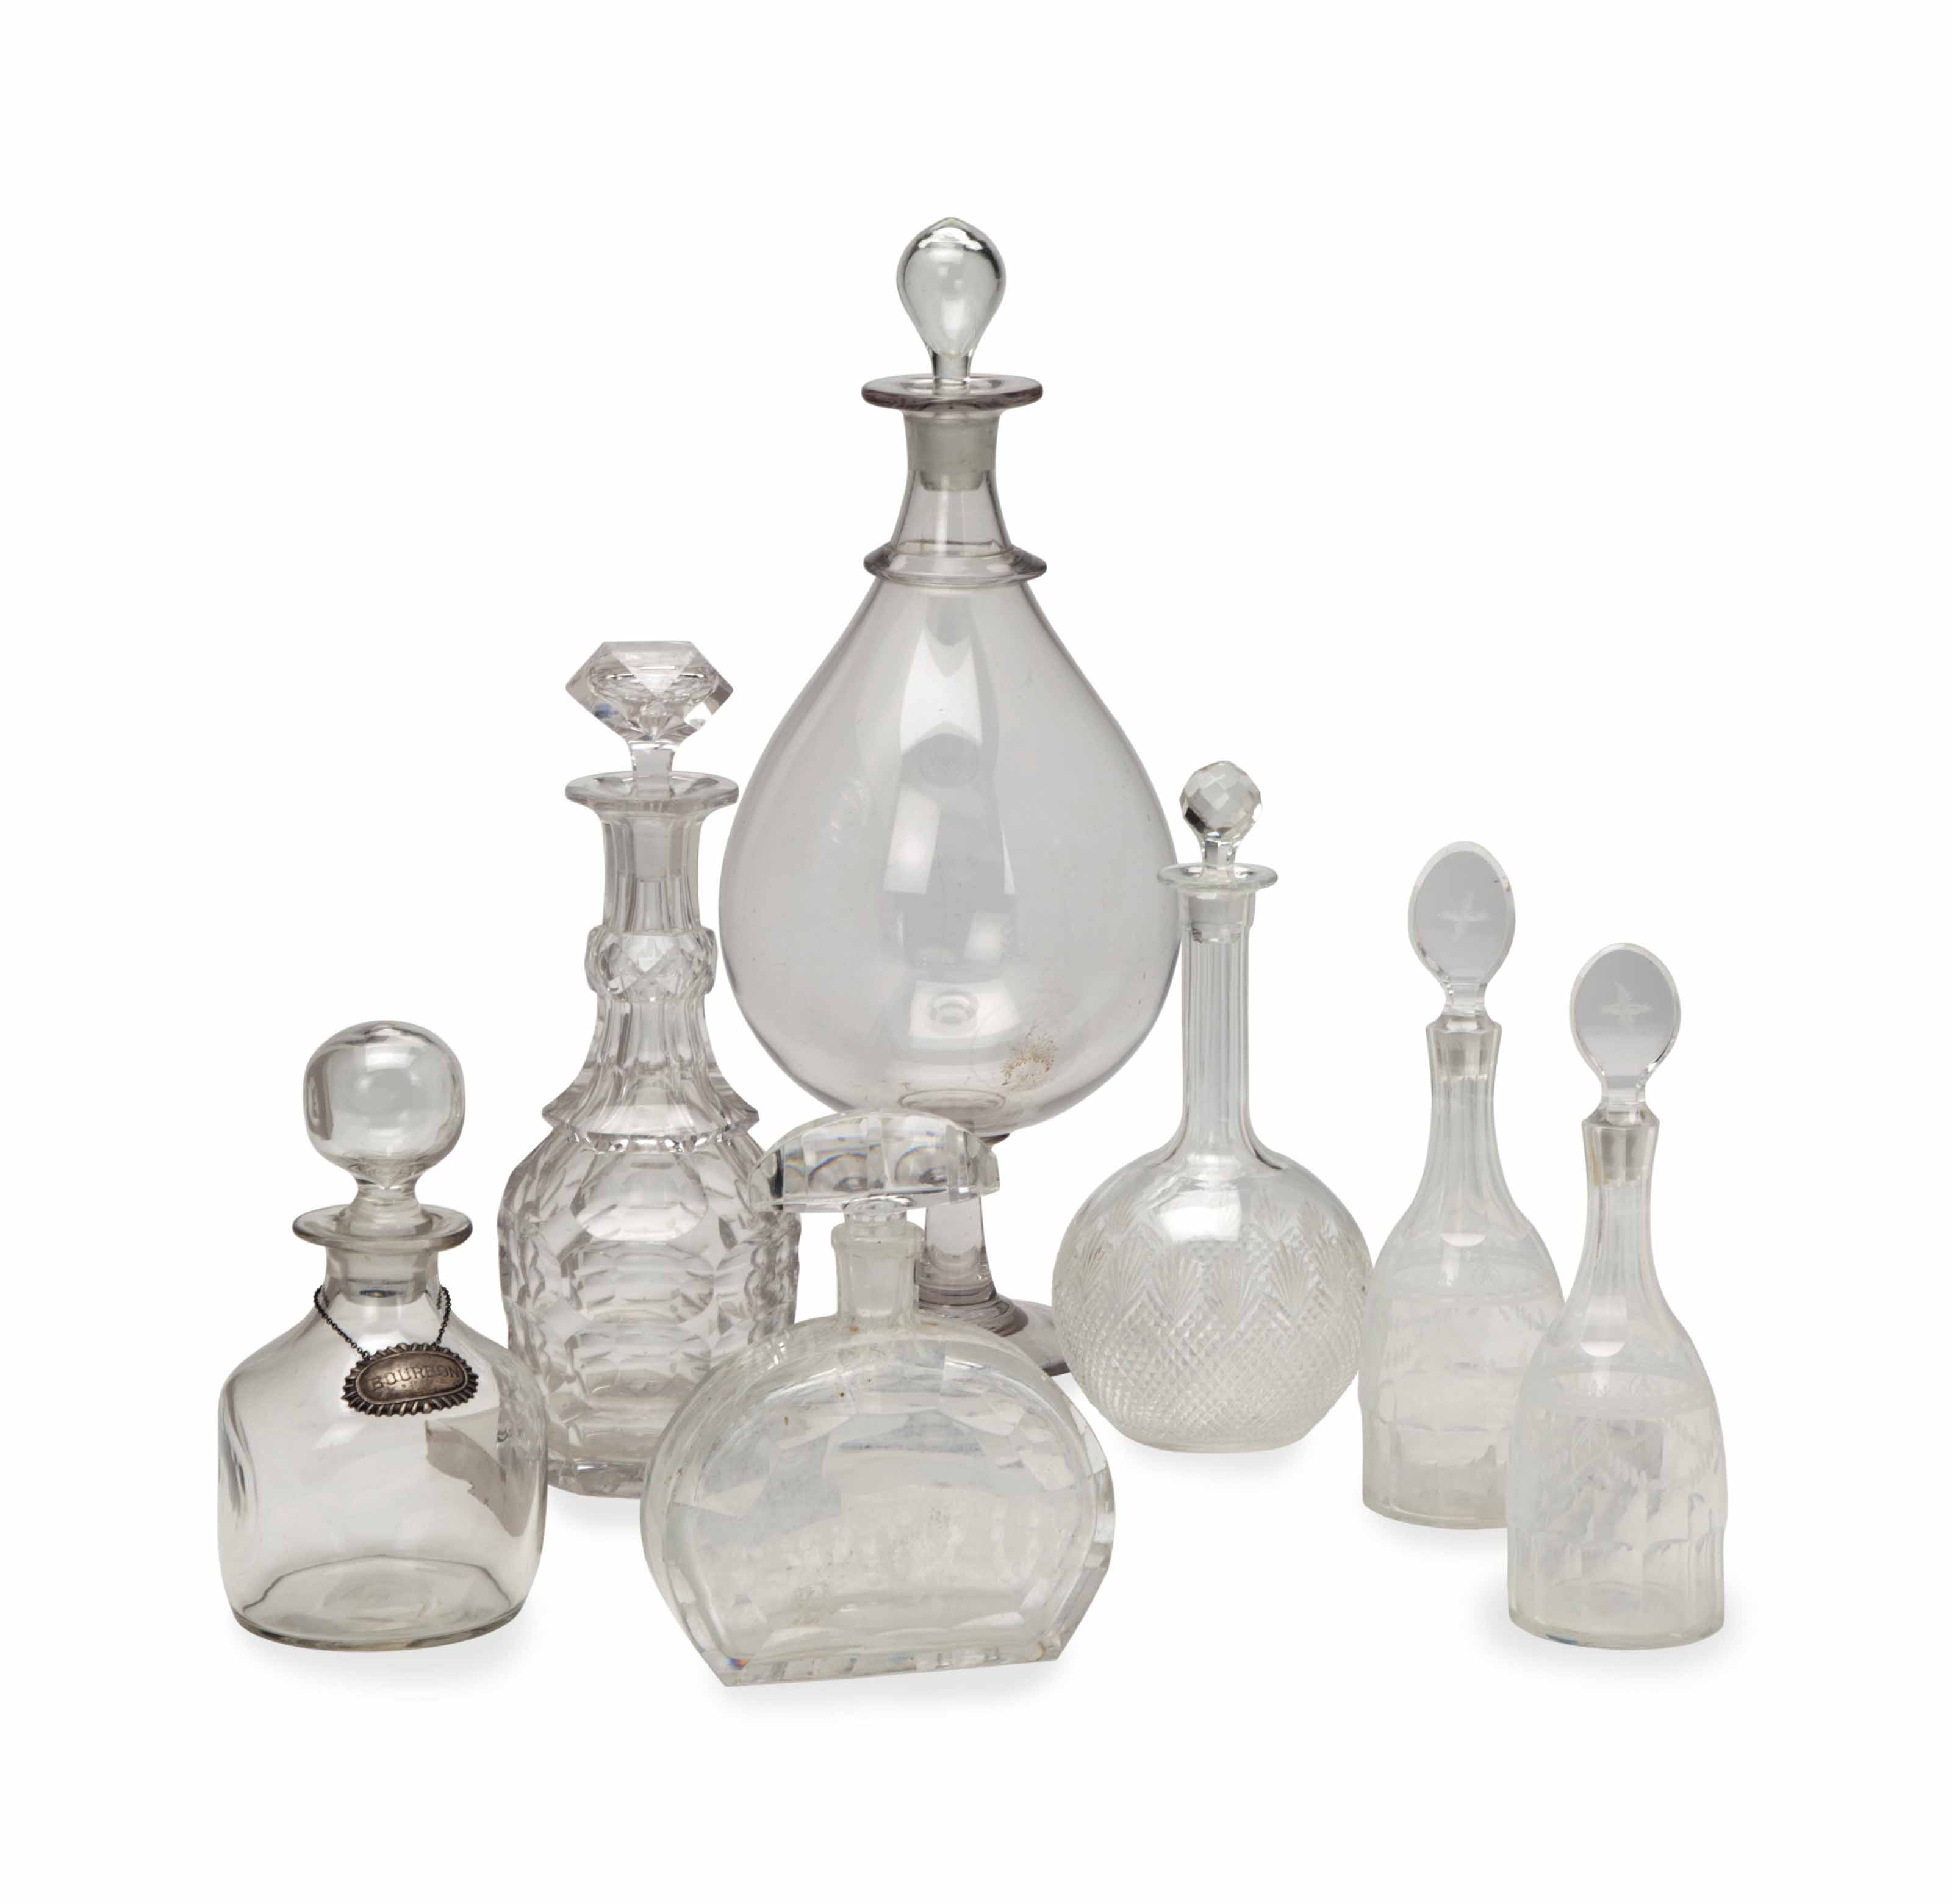 A GROUP OF CLEAR CUT-GLASS DEC